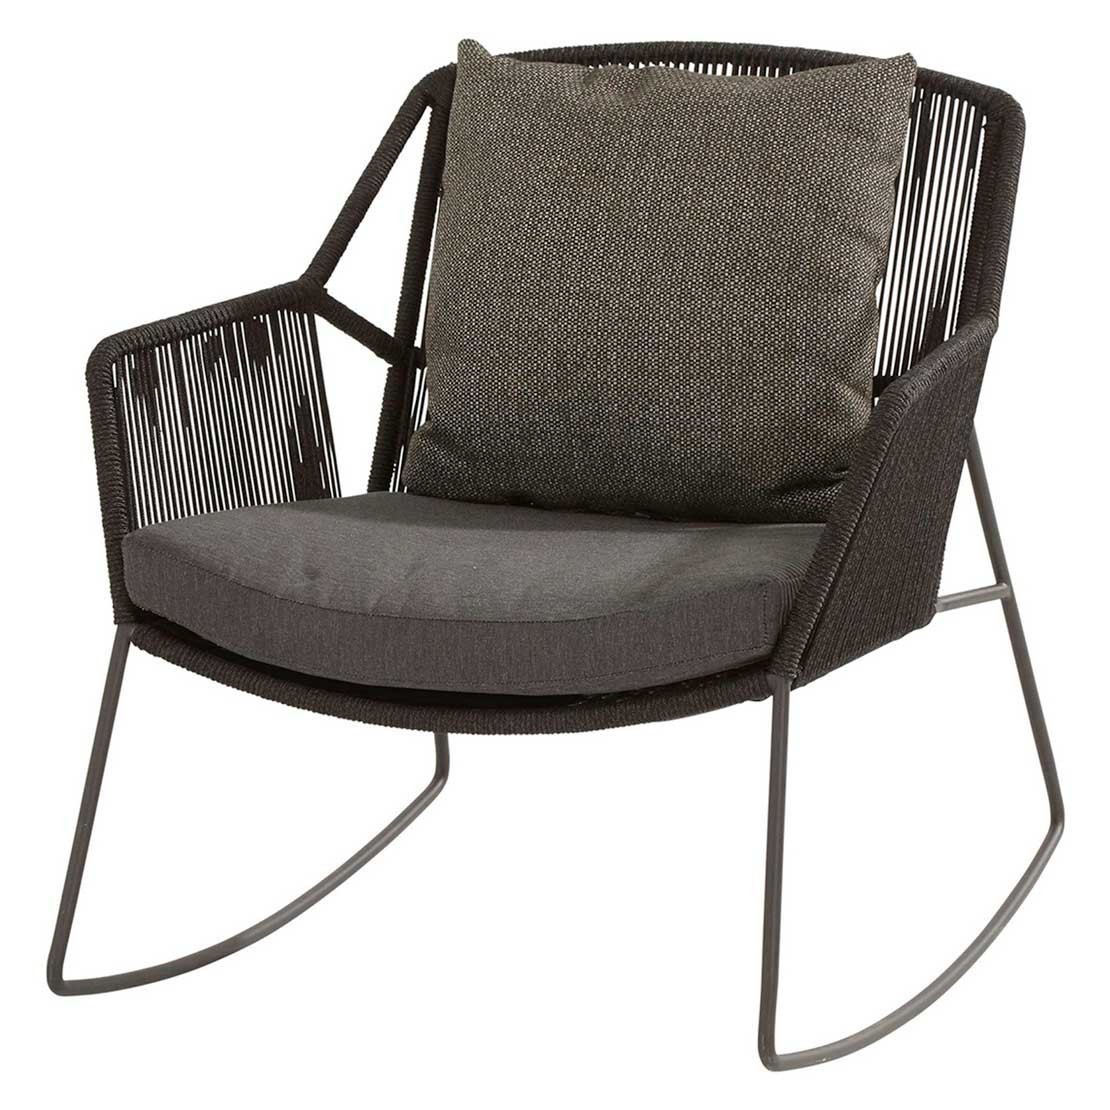 Accor rocking chair with 2 cushions